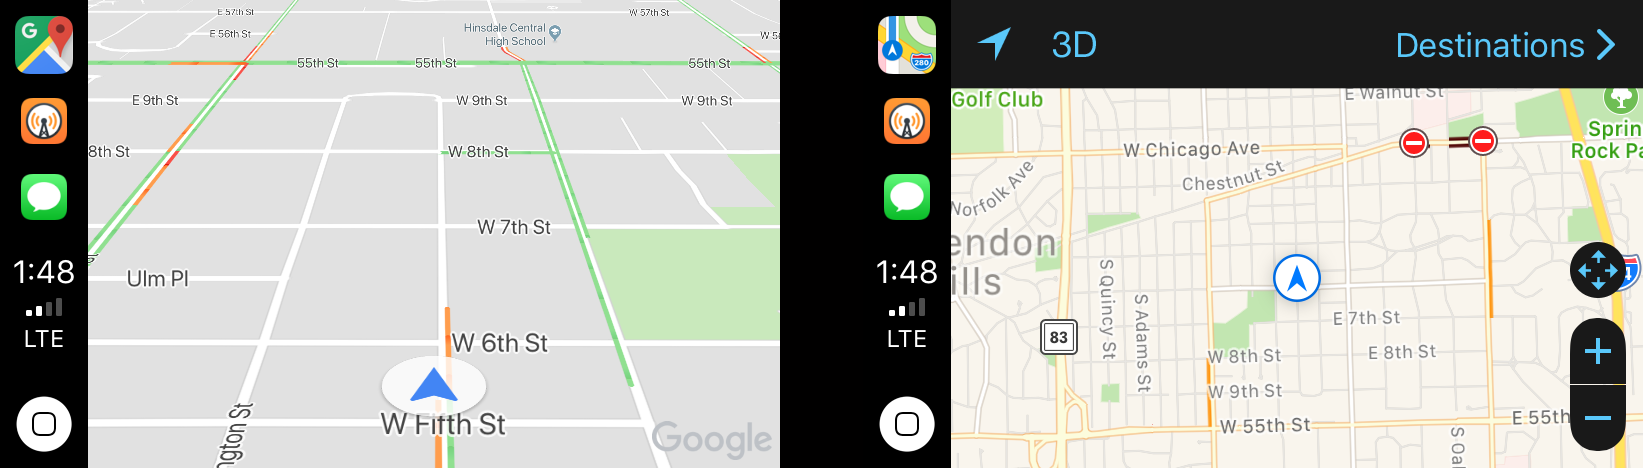 Google Maps (left) and Apple Maps (right).